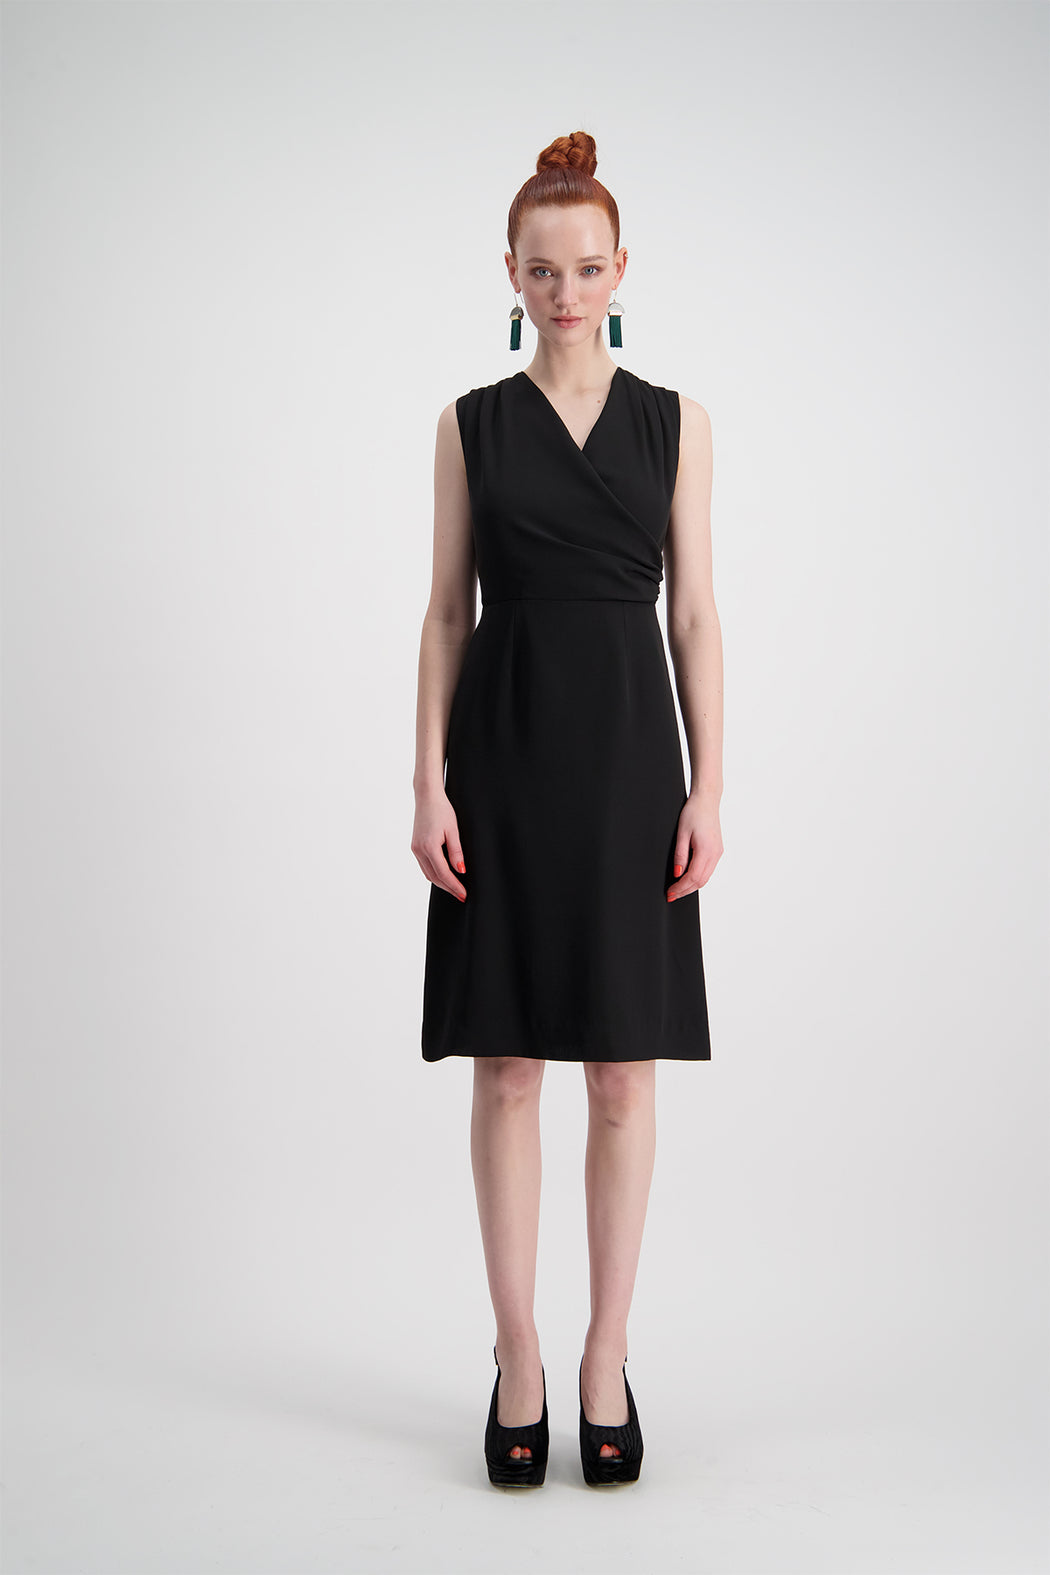 WORLD 4385 Helen of Jersey Dress Black